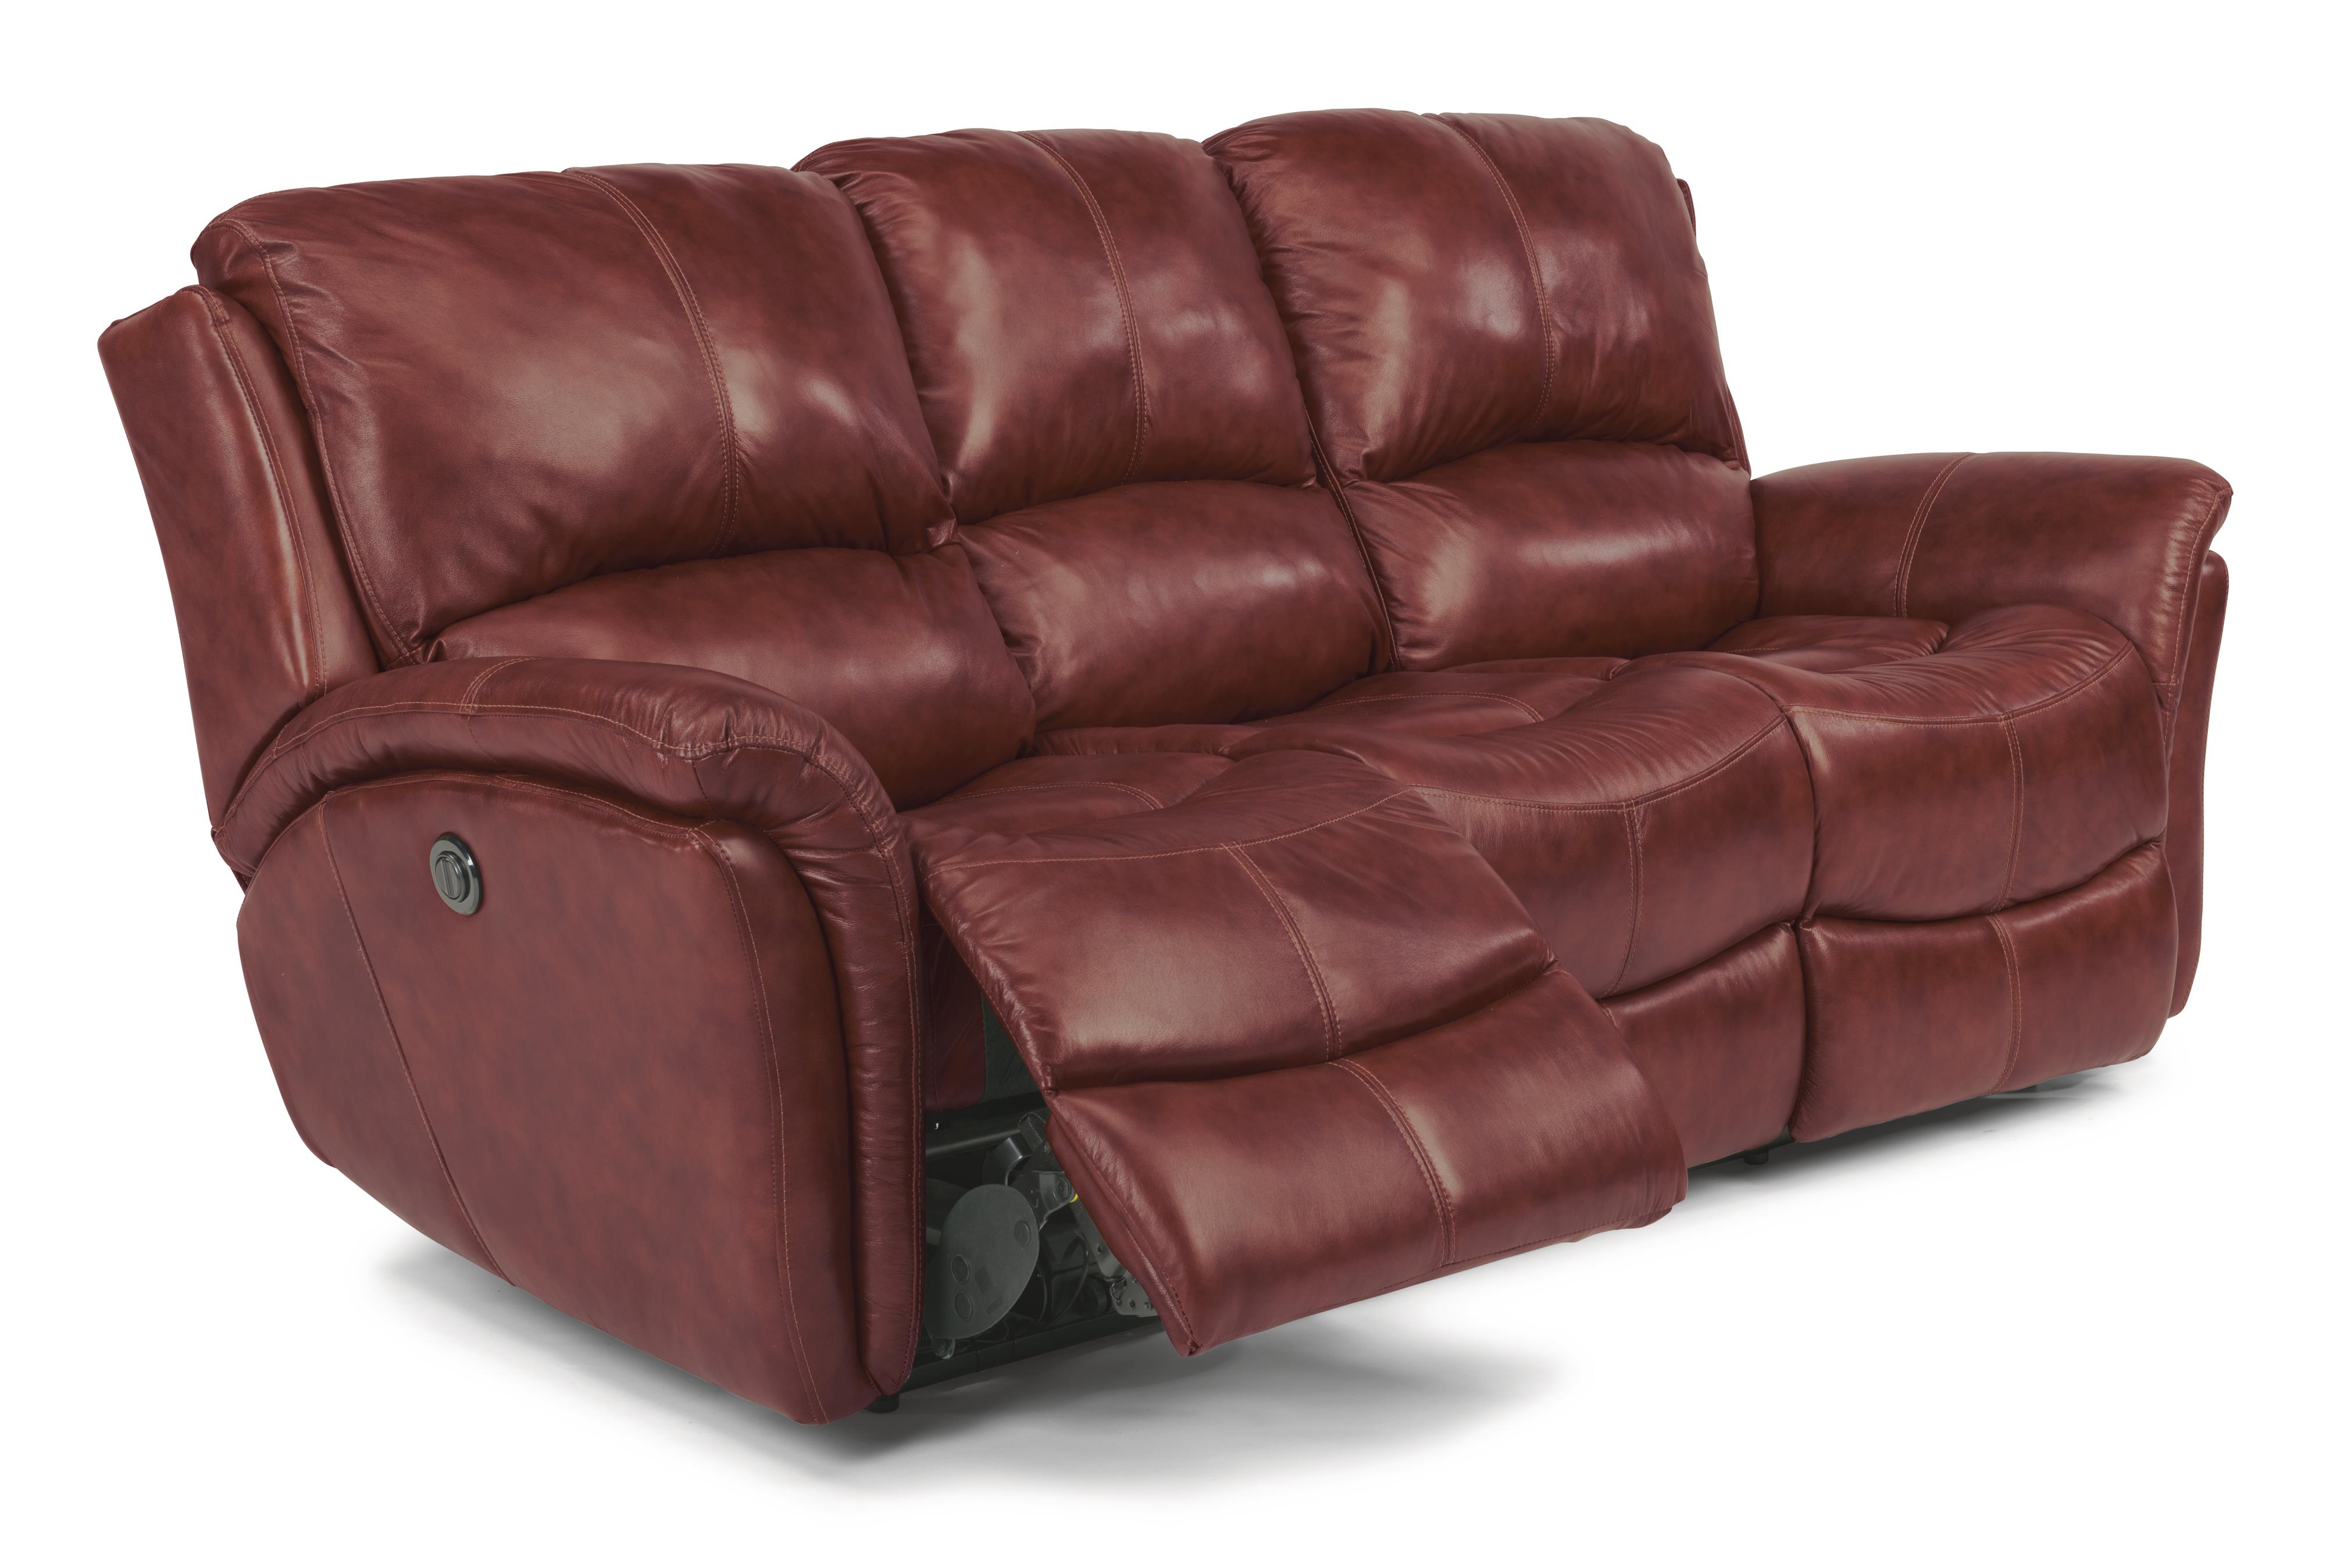 leather vs fabric sofa cats 12 inch table flexsteel latitudes dominique 1445 62p casual reclining with power